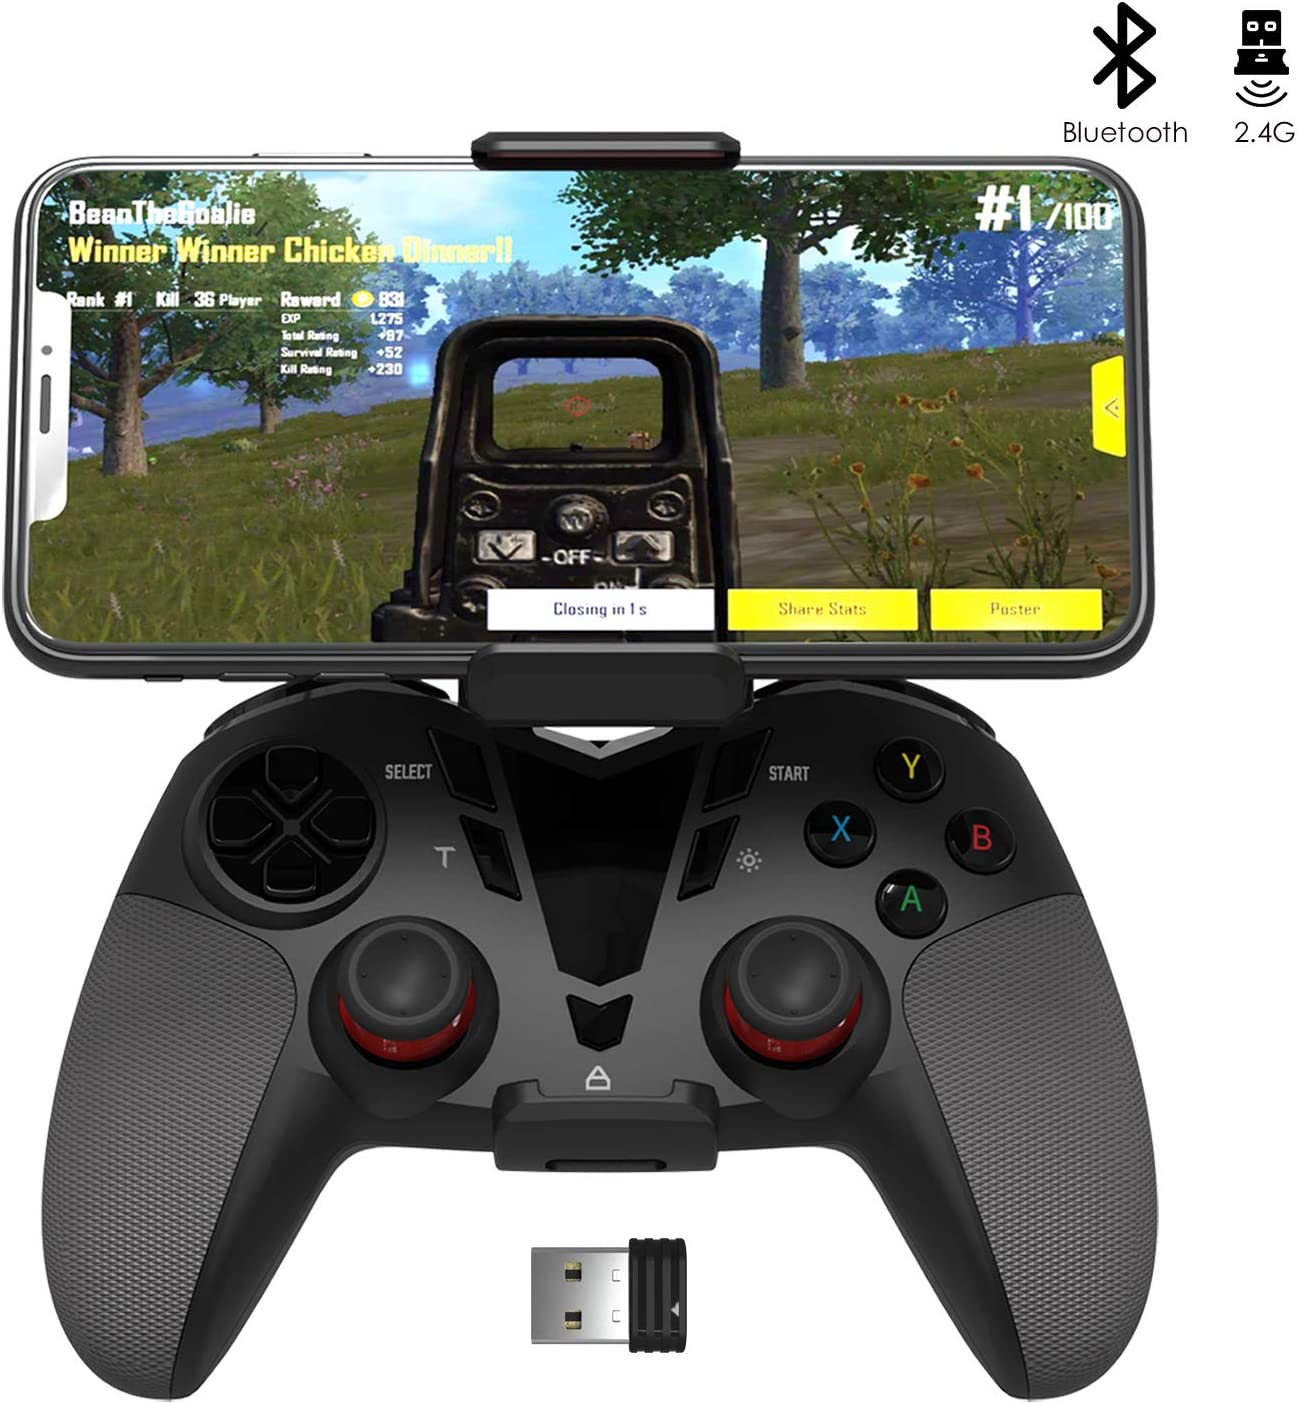 Darkwalker Mando Inalámbrico Bluetooth para Android OS/PS3/PC Windows, Mando De Videojuegos Compatible con Los Juegos Móviles Negro